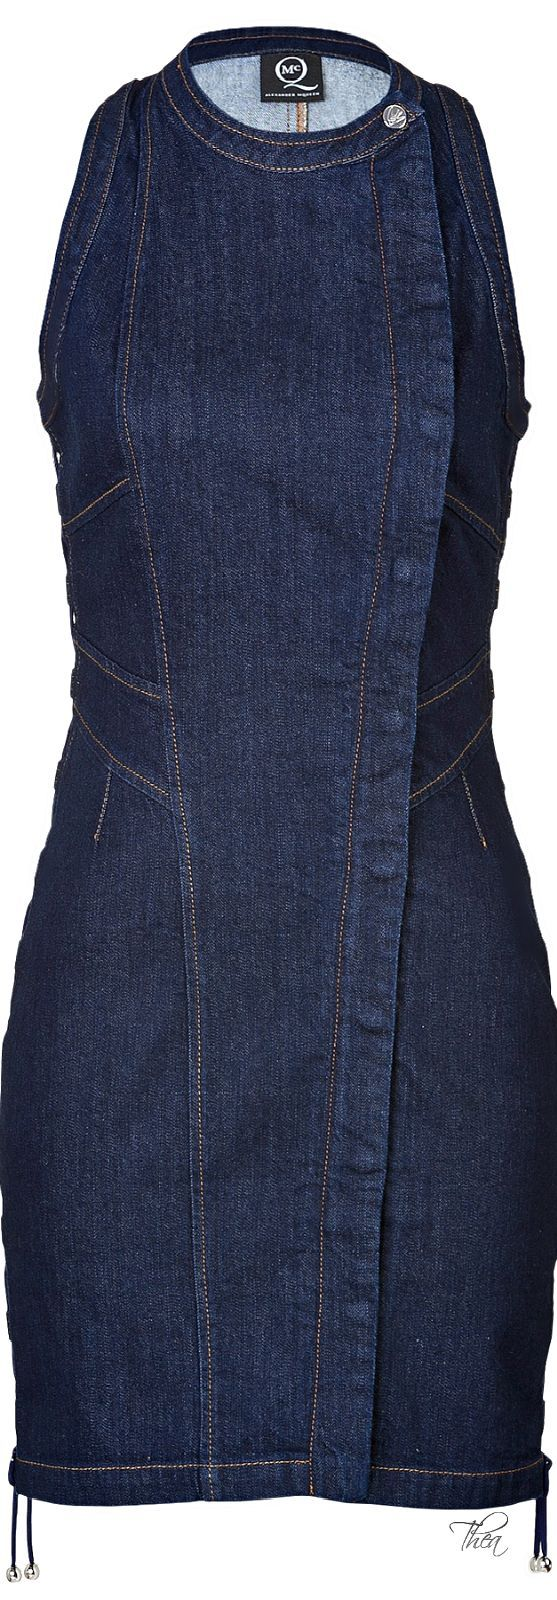 McQ by Alexander McQueen Blue Bodycon Denim Dress | The House of Beccaria~:              https://br.pinterest.com/source/pinterest.com/